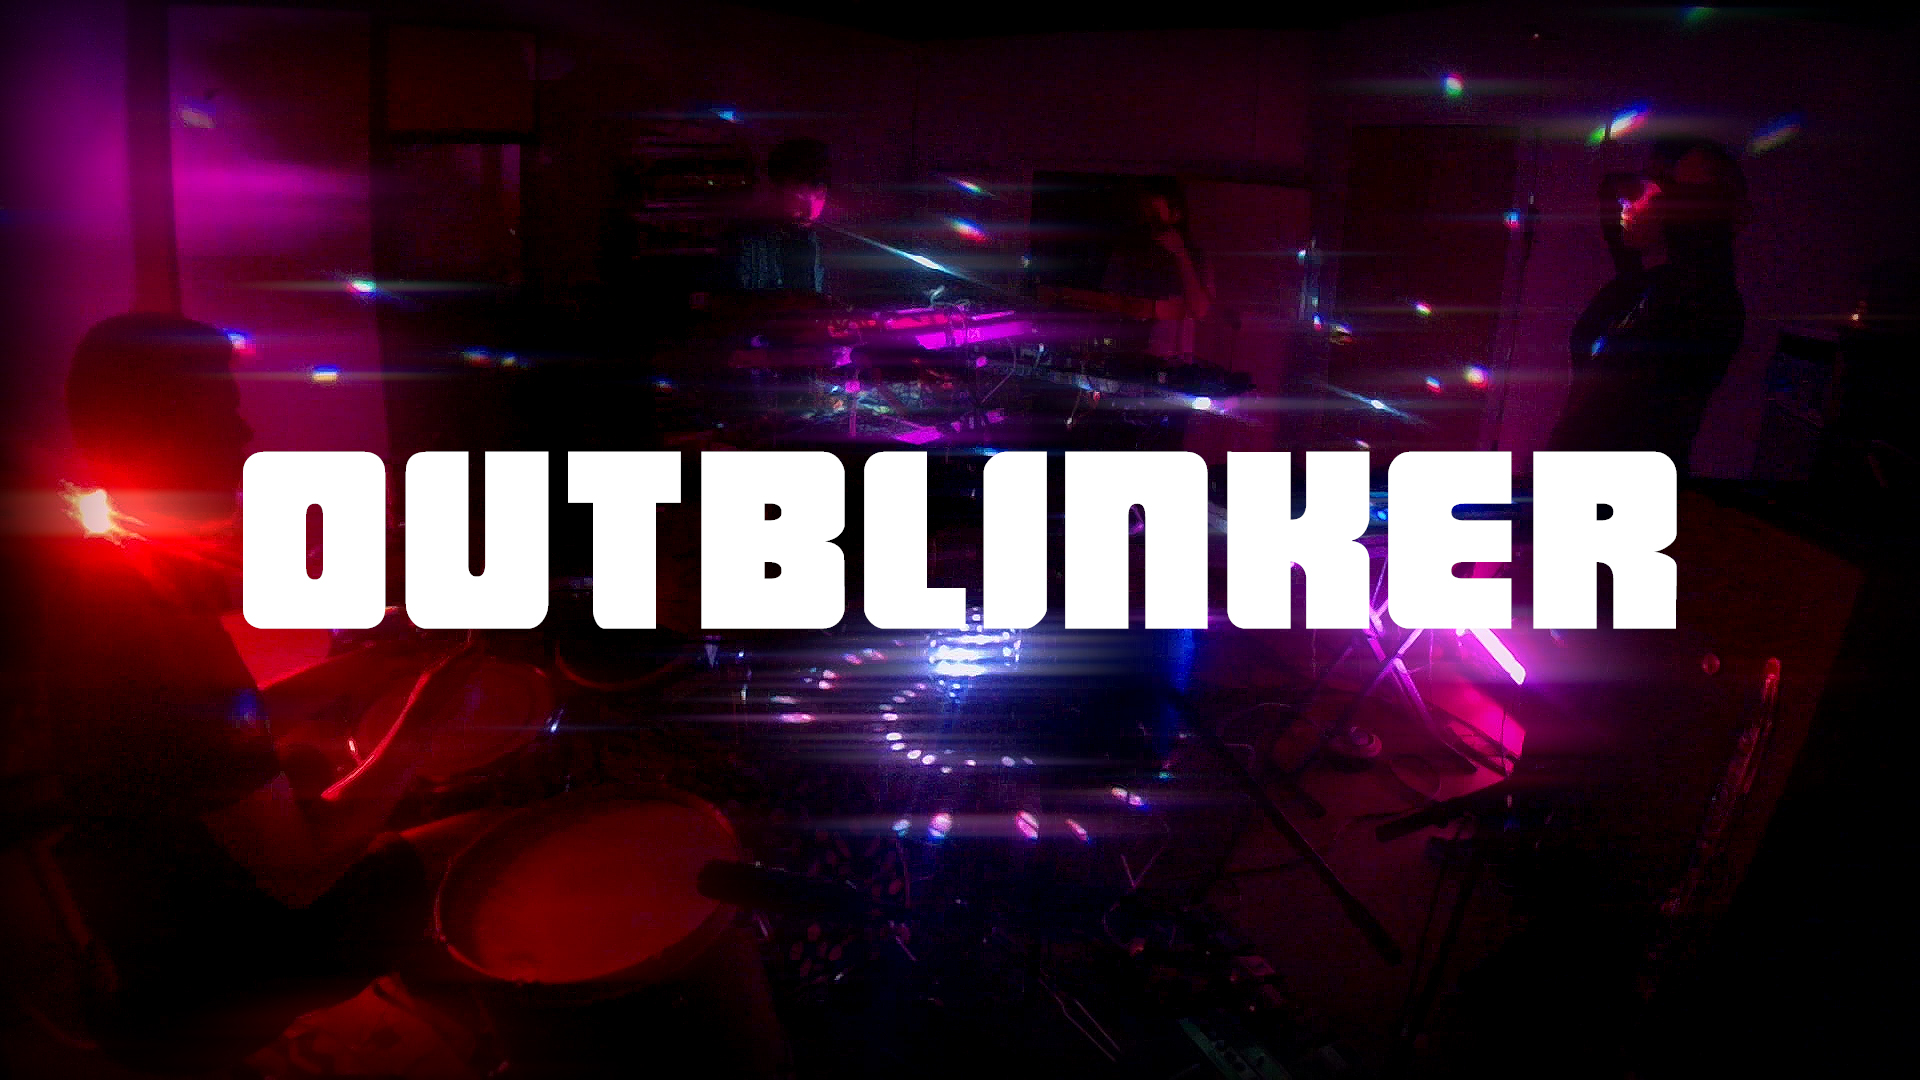 Outblinker – Electronic Noise Rock from Glasgow, Scotland